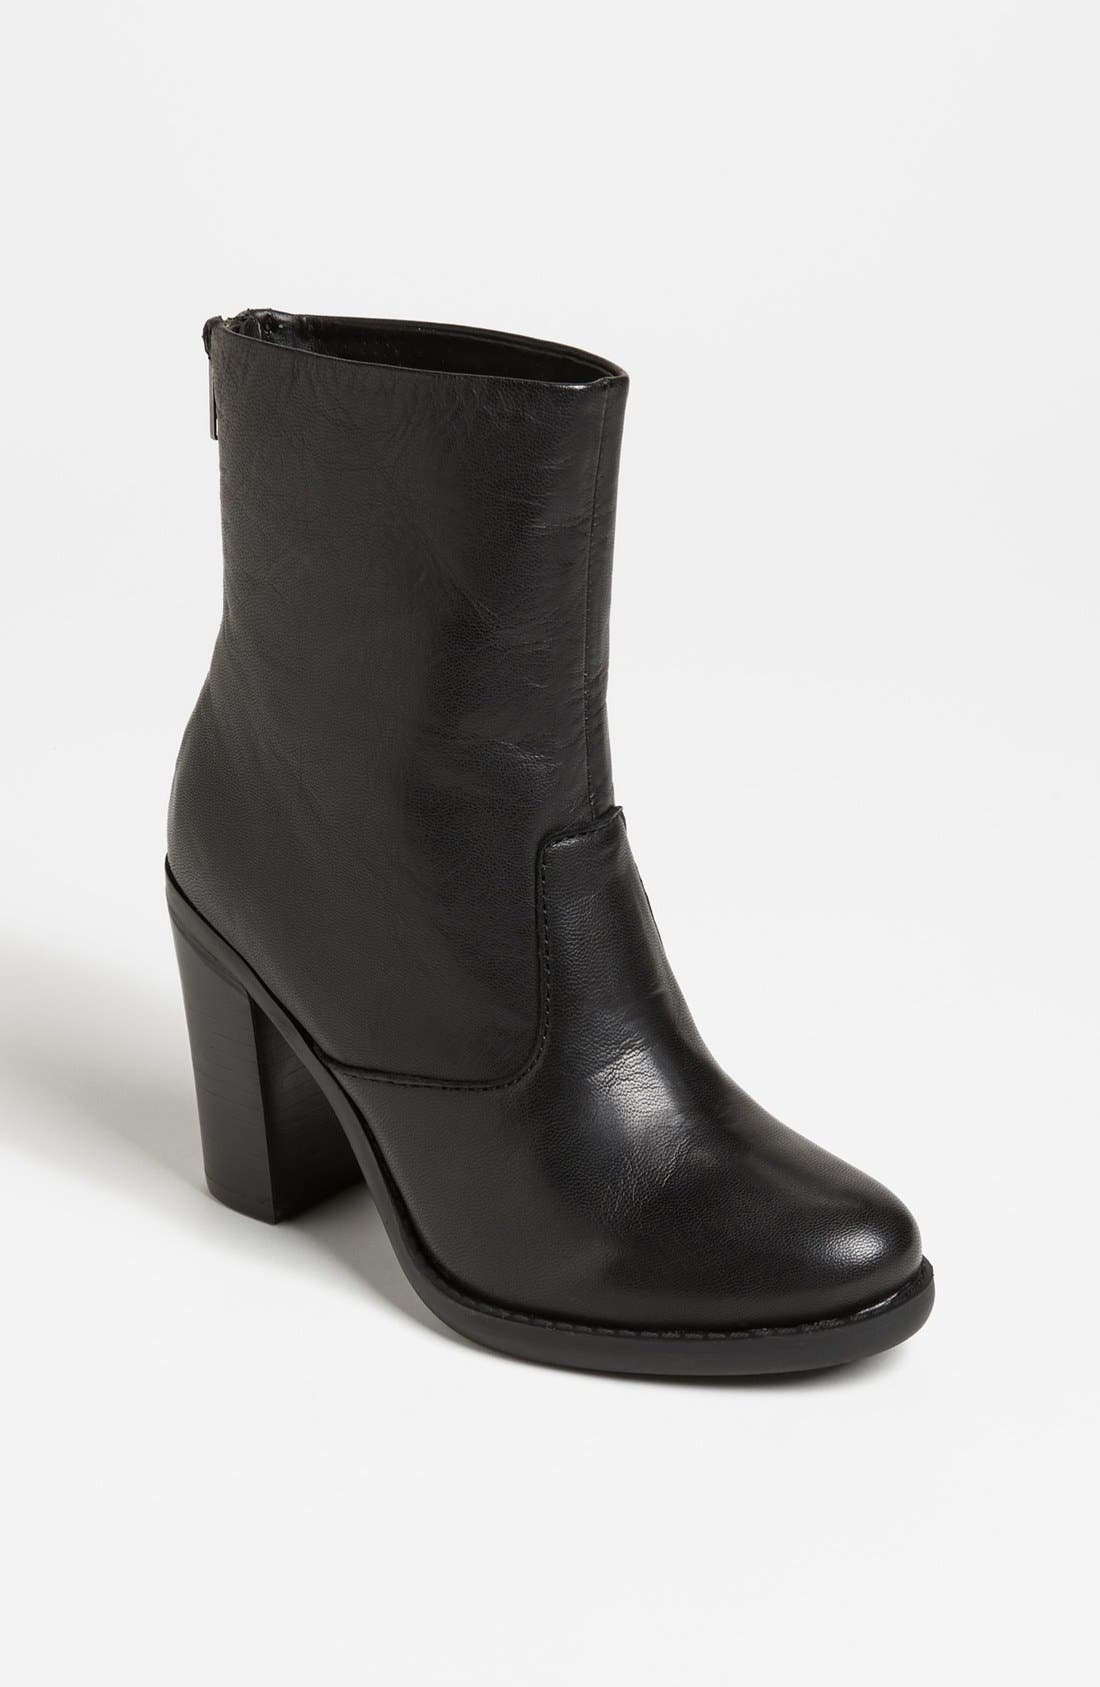 Alternate Image 1 Selected - Steve Madden 'San Jose' Boot